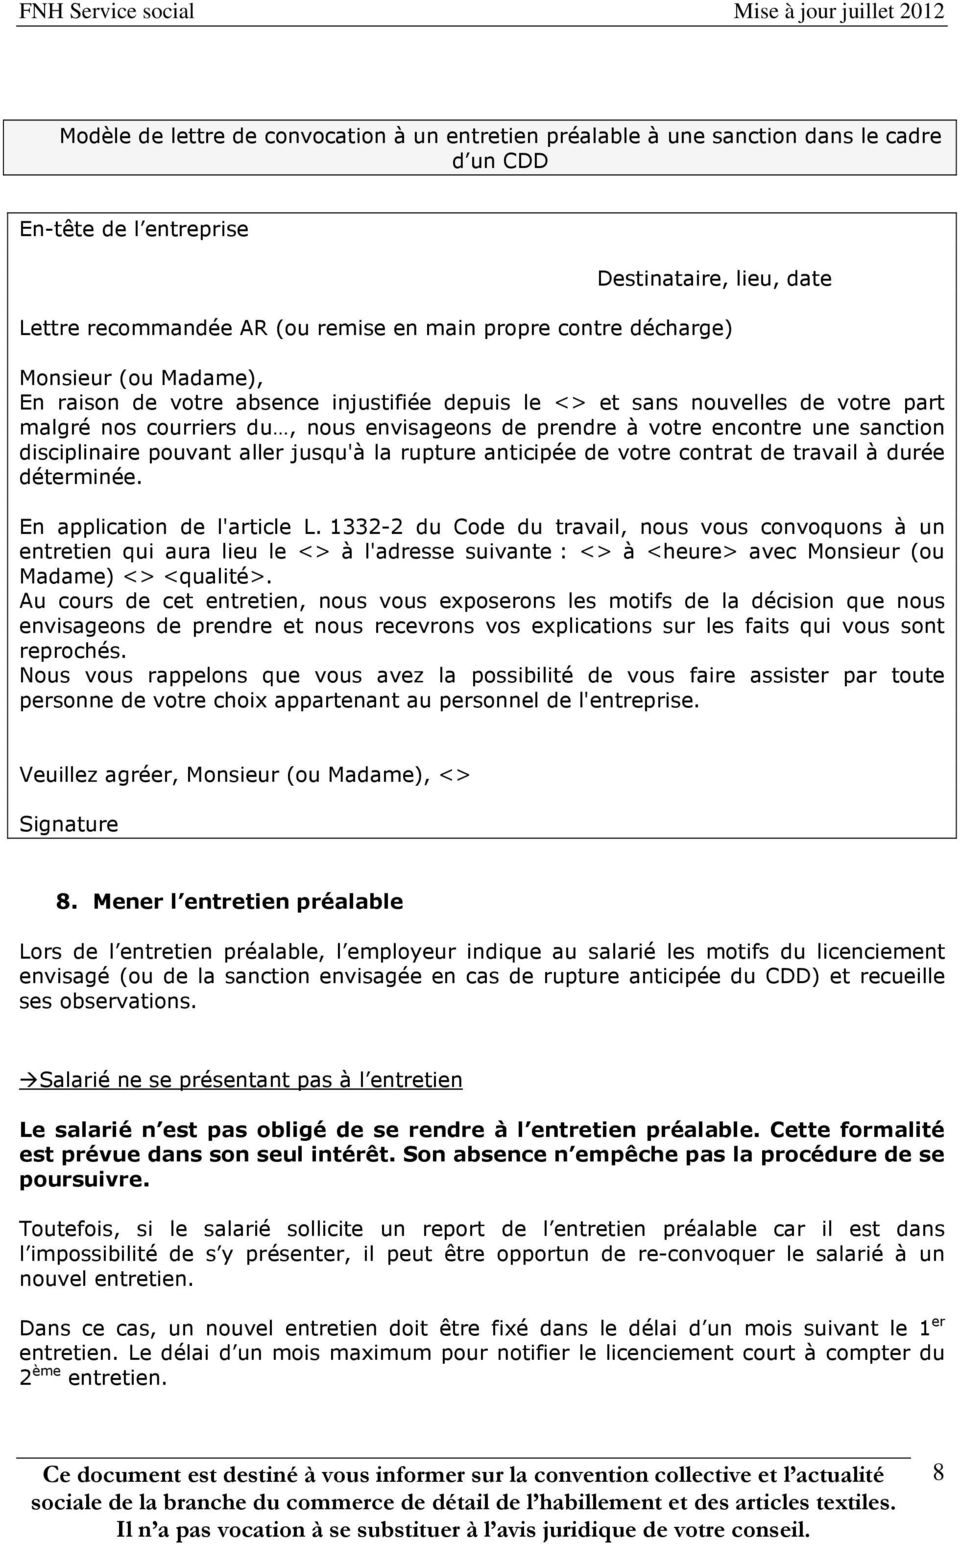 Comment Reagir Face A Une Absence Injustifiee Du Salarie Pdf Free Download